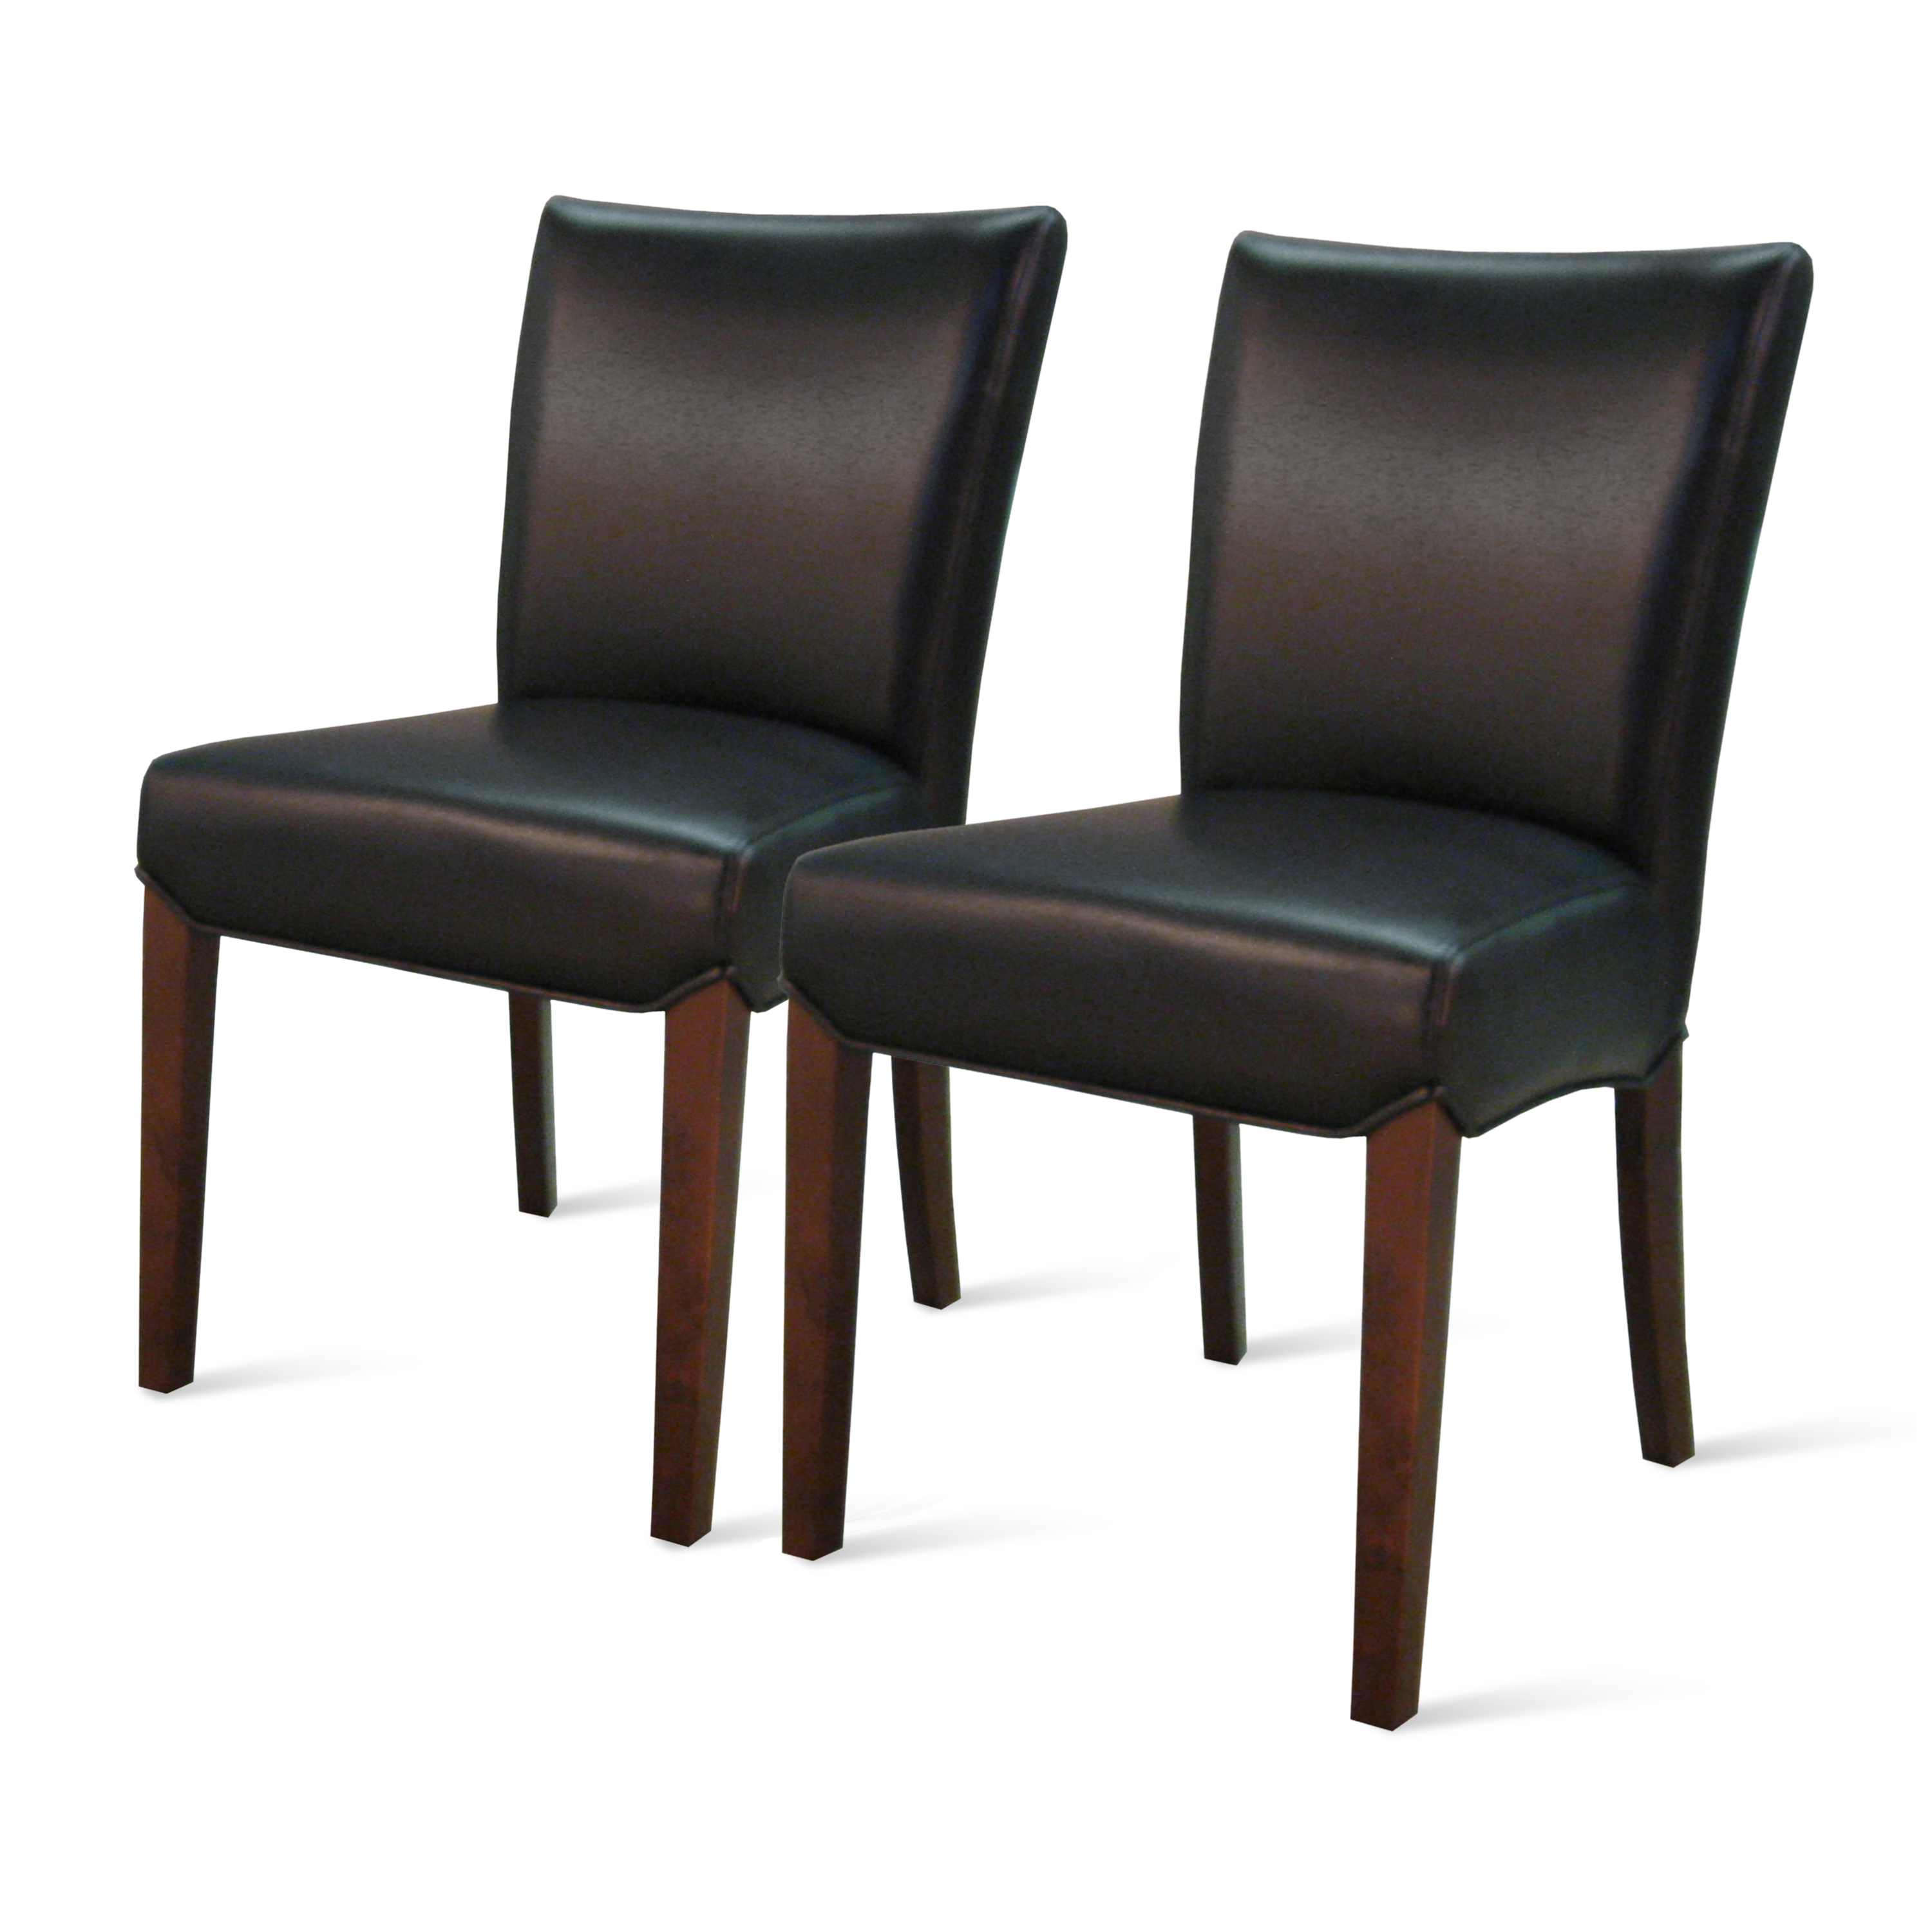 Beverly Hills Dining Chairs (Set of 2), Multiple Colors